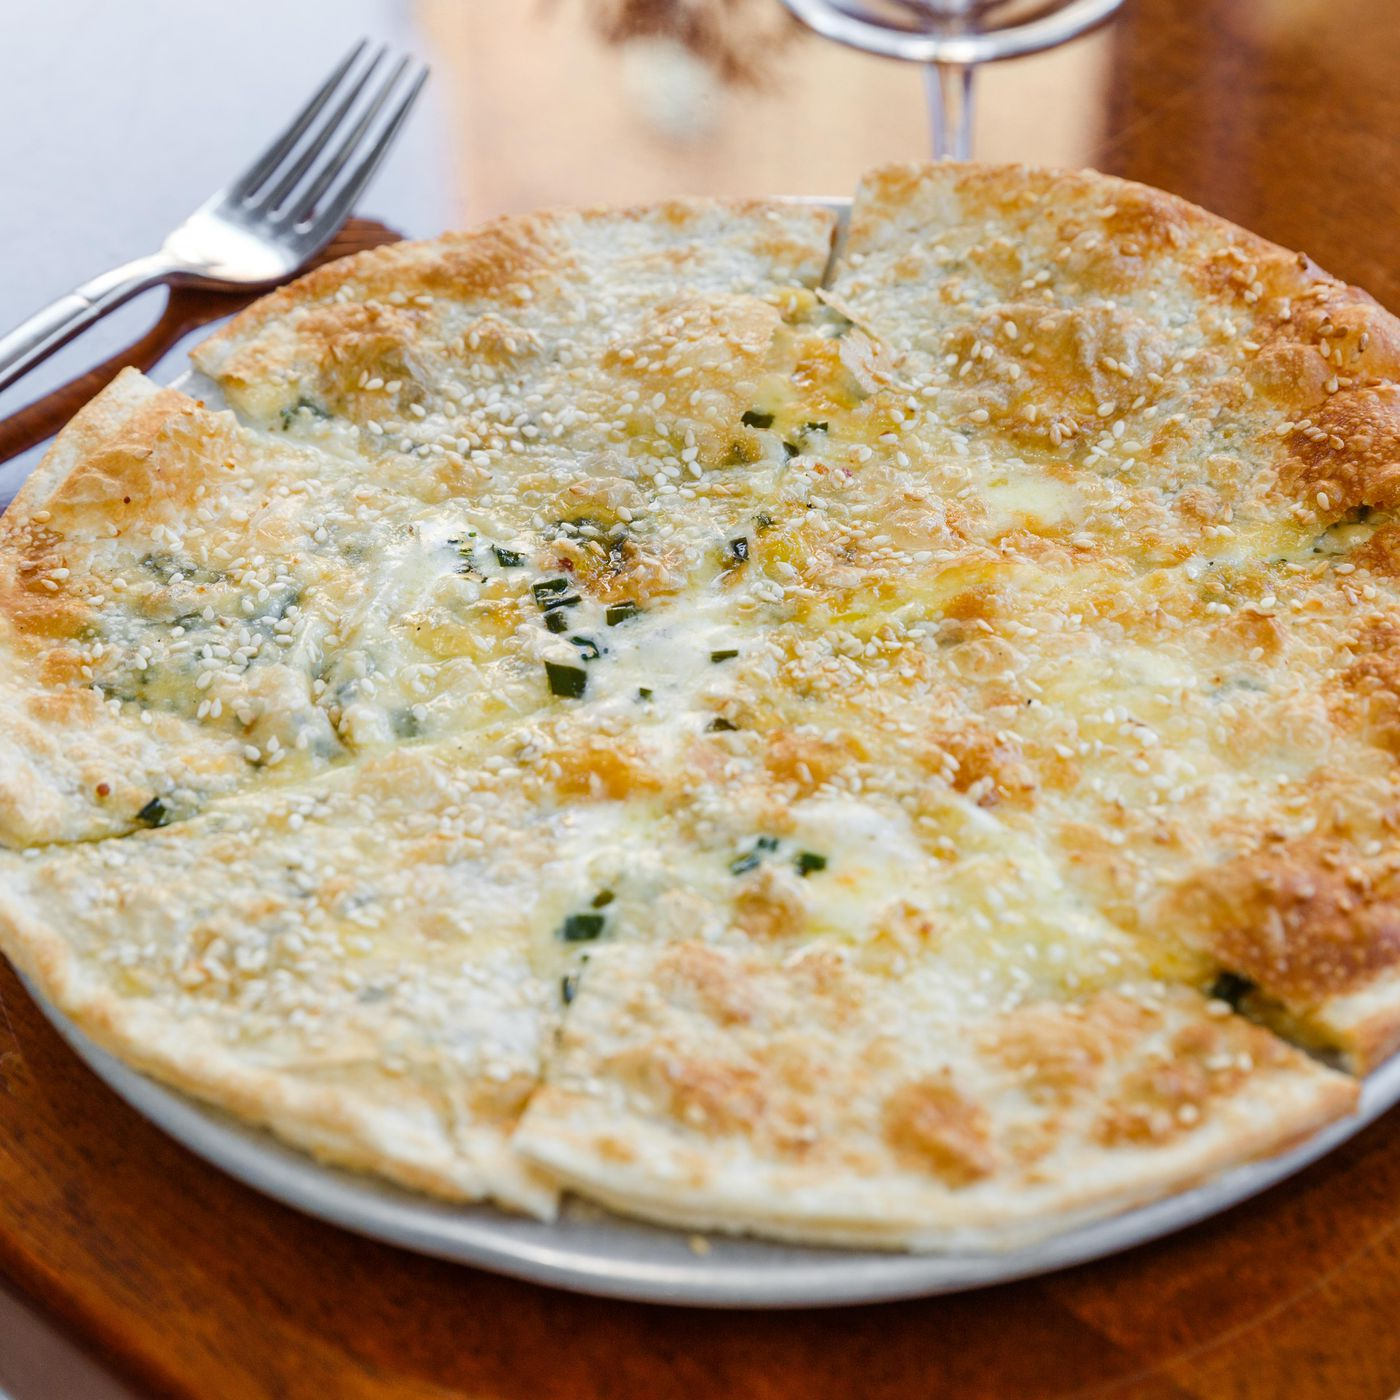 12 Top Dishes to Try in the West Village - Eater NY